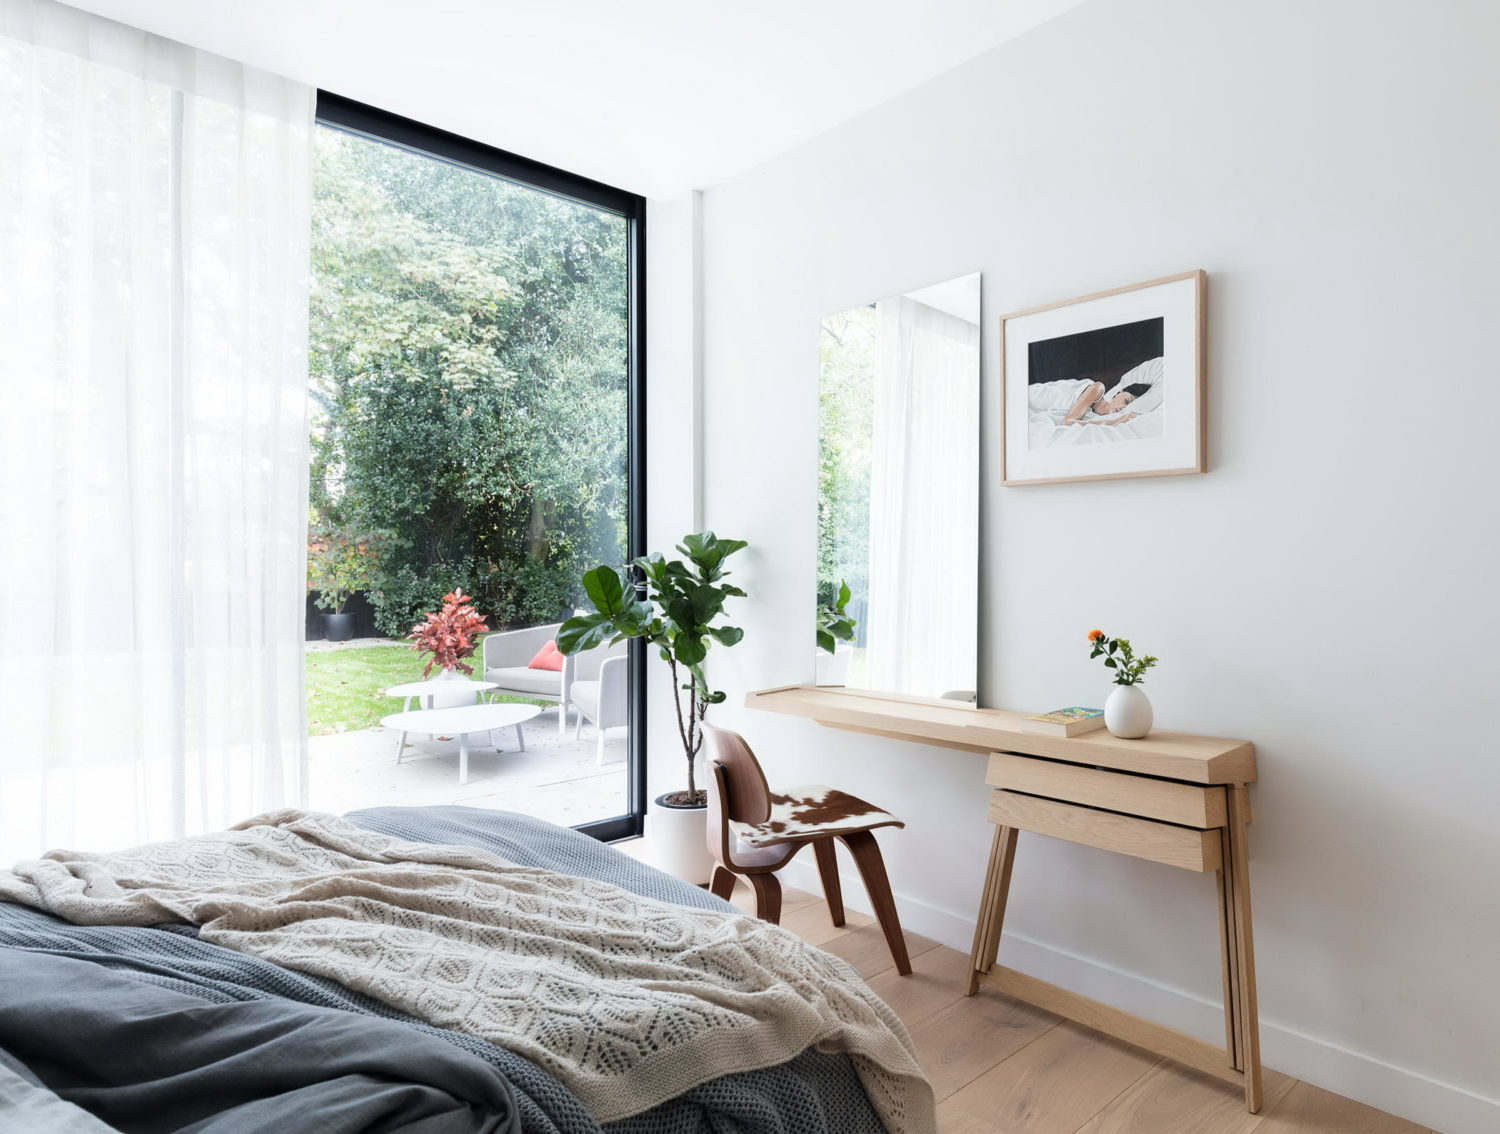 Modern New Home in London by Black & MilkModern New Home in London by Black & Milk